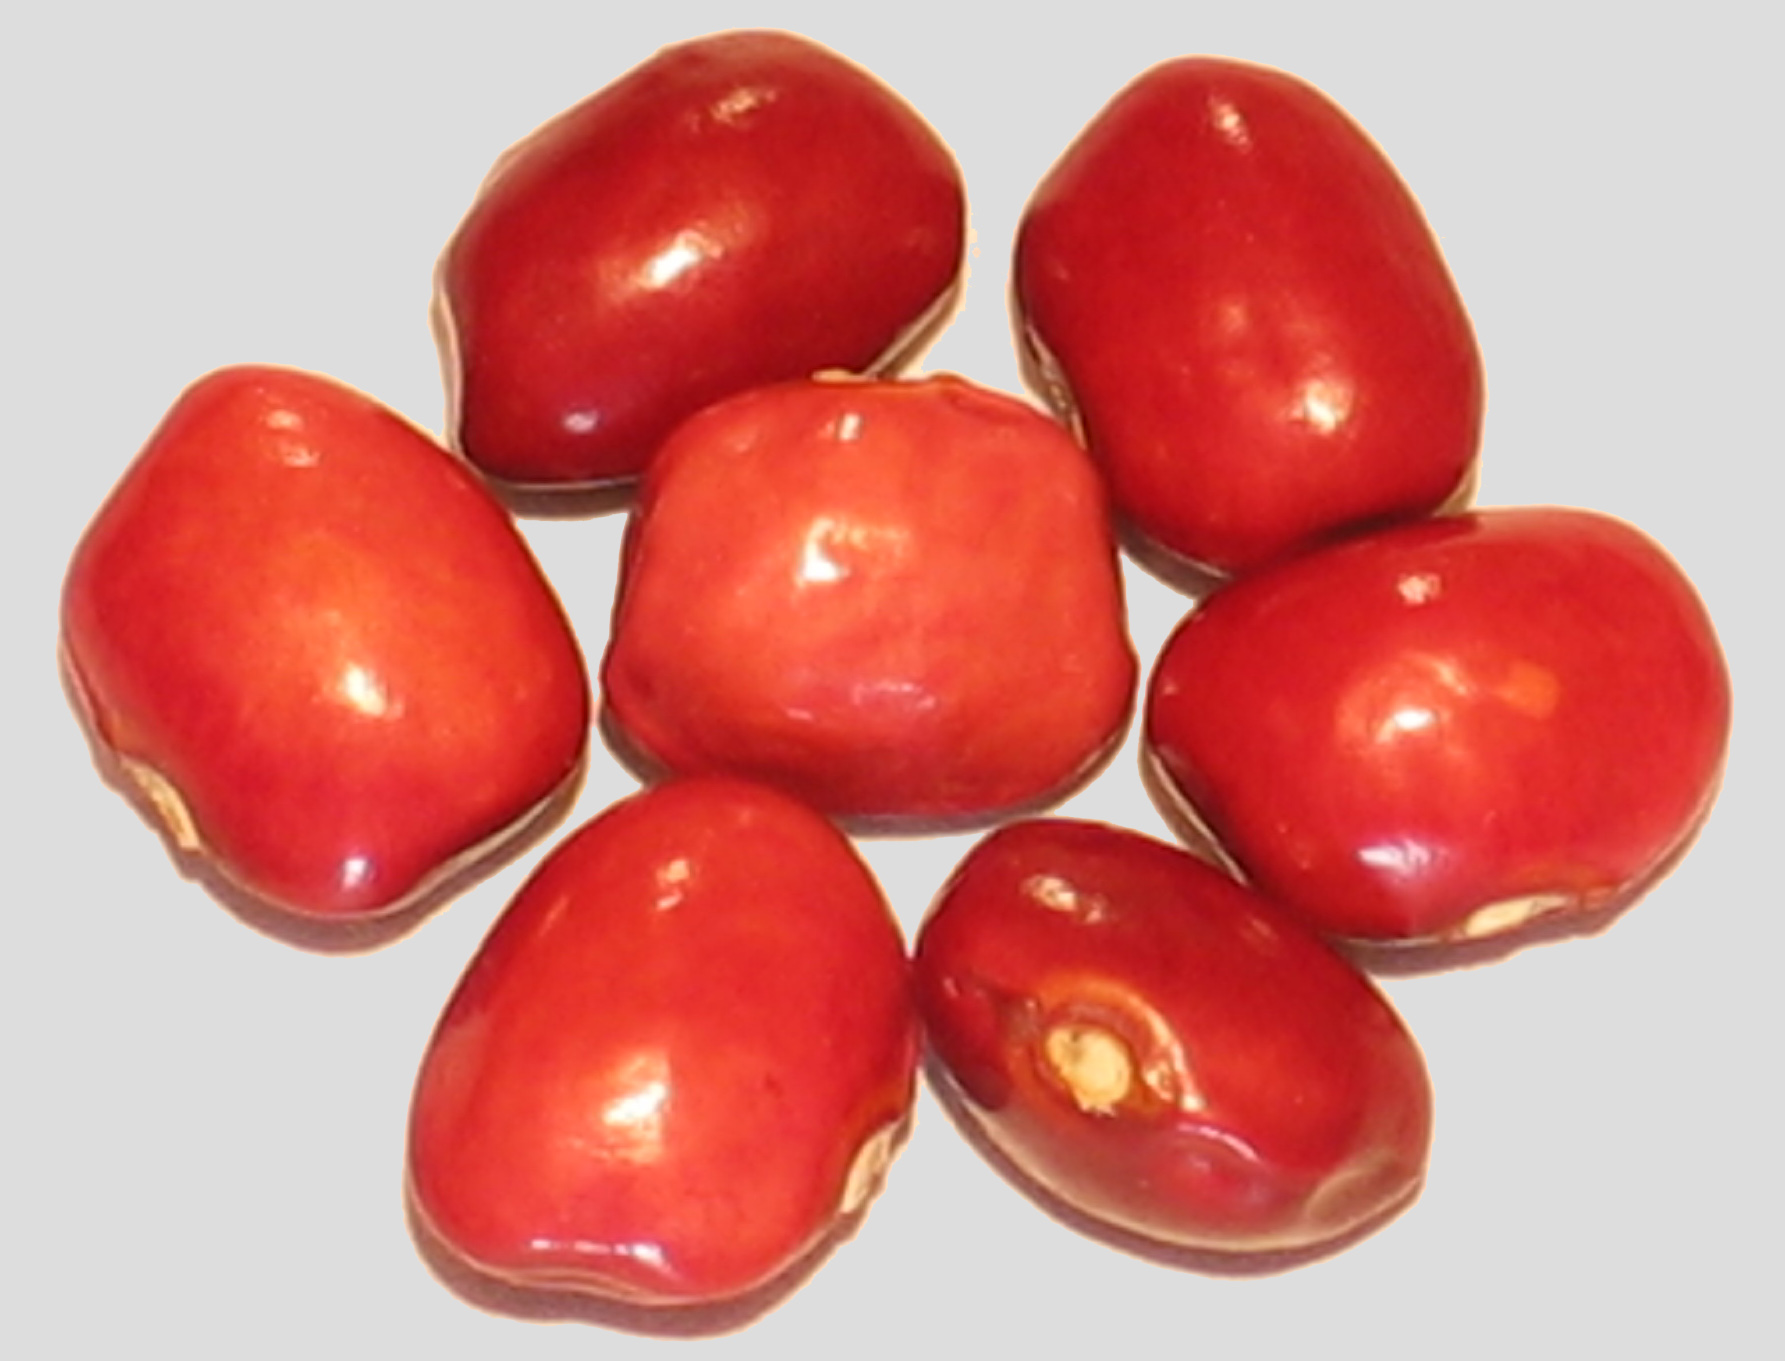 image of Rote Kipflerbohne beans